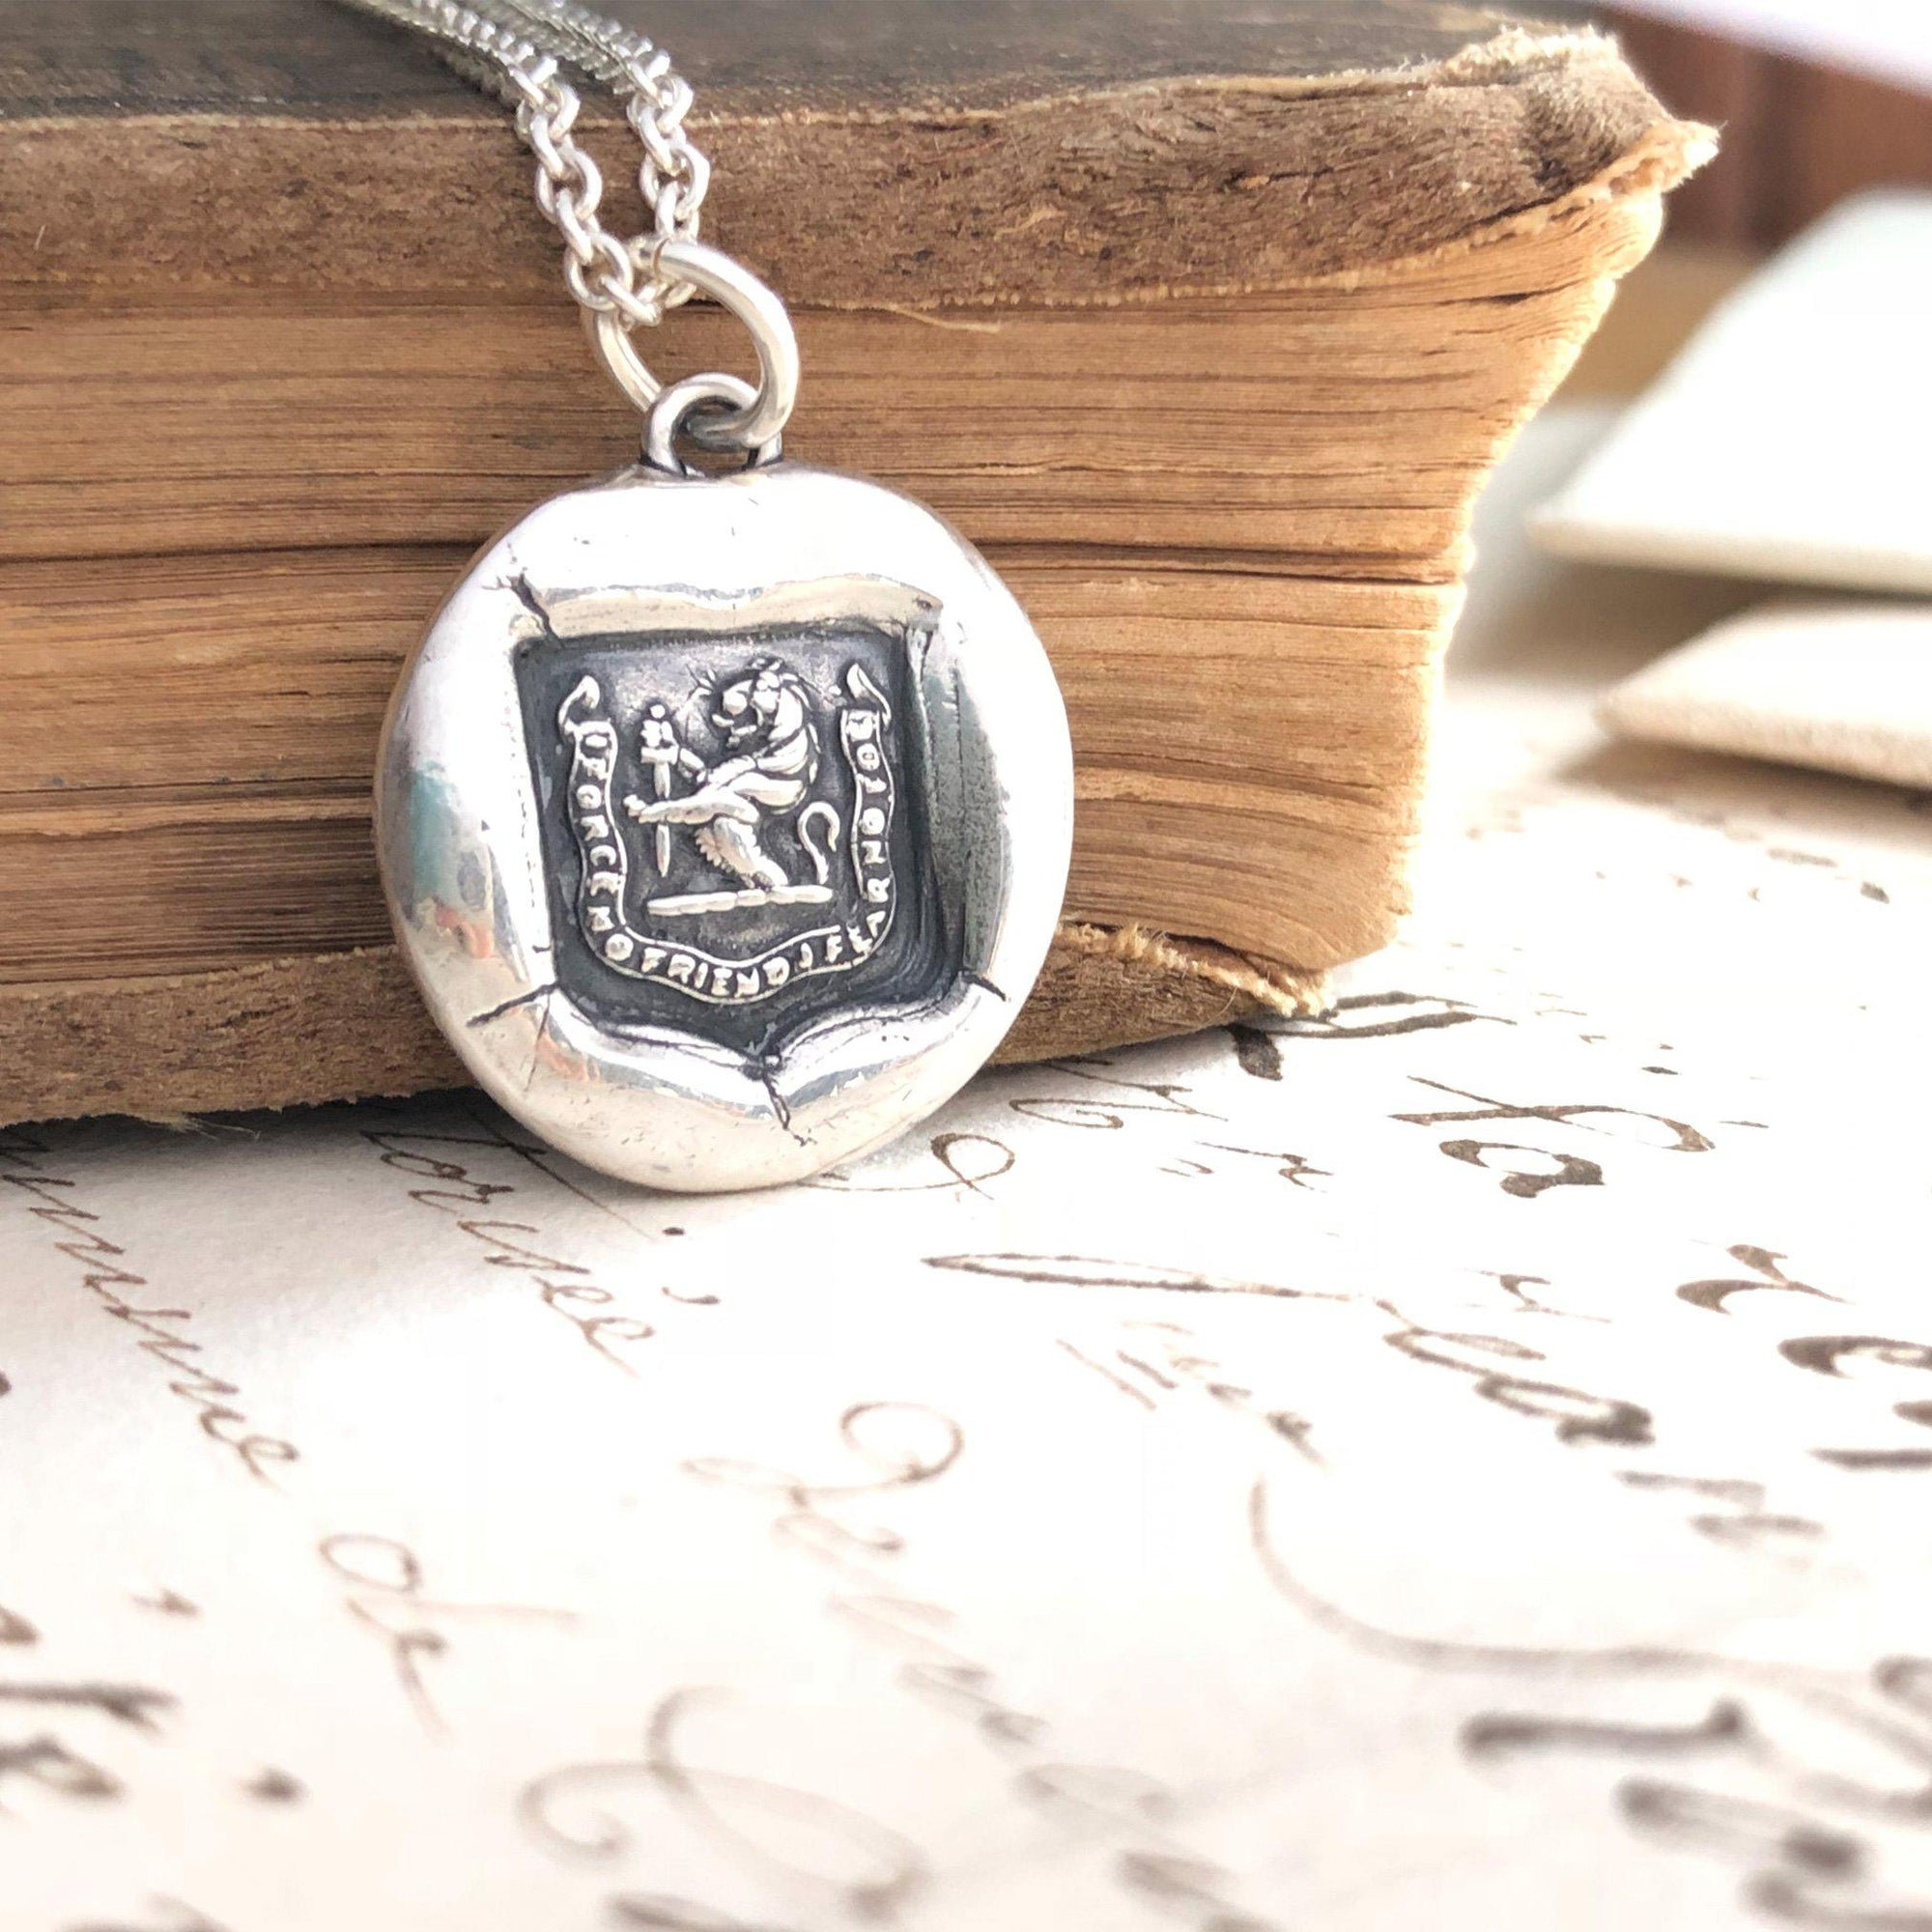 Faithful Friend Wax Seal Necklace - Courageous Foe